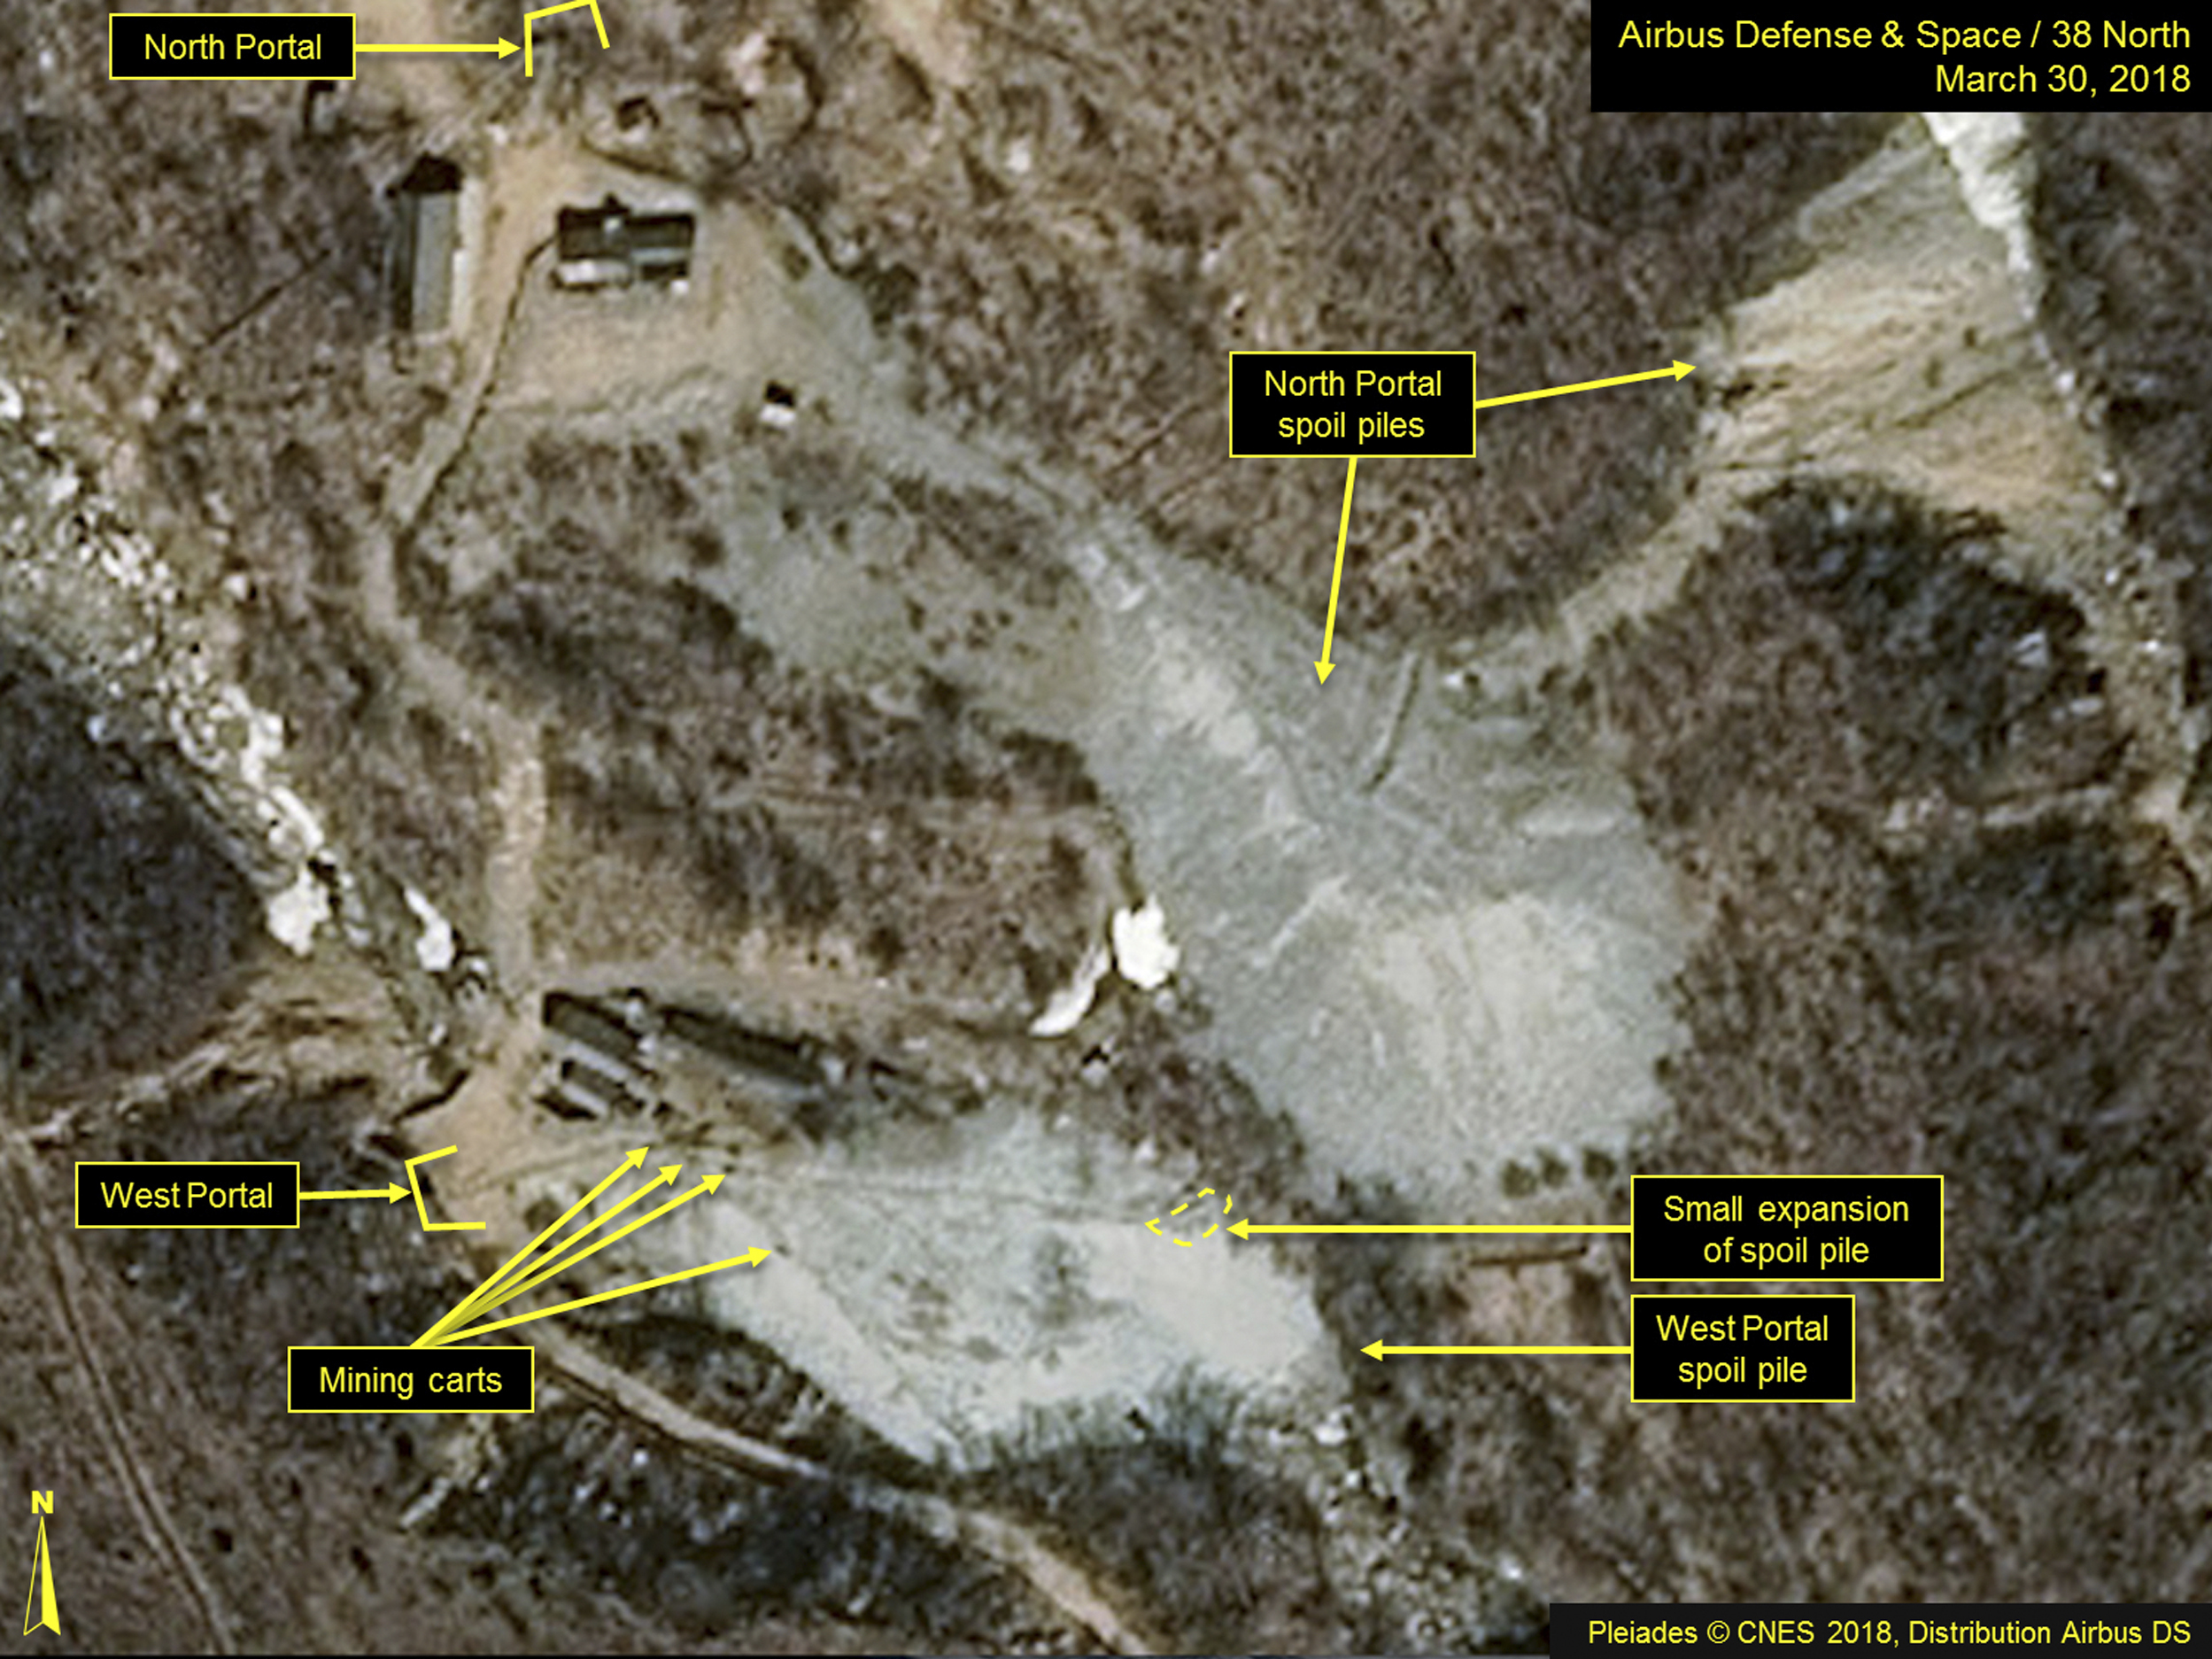 A satellite image released and notated by Airbus Defense & Space and 38 North on March 30 shows the Punggye-ri nuclear test site in North Korea.